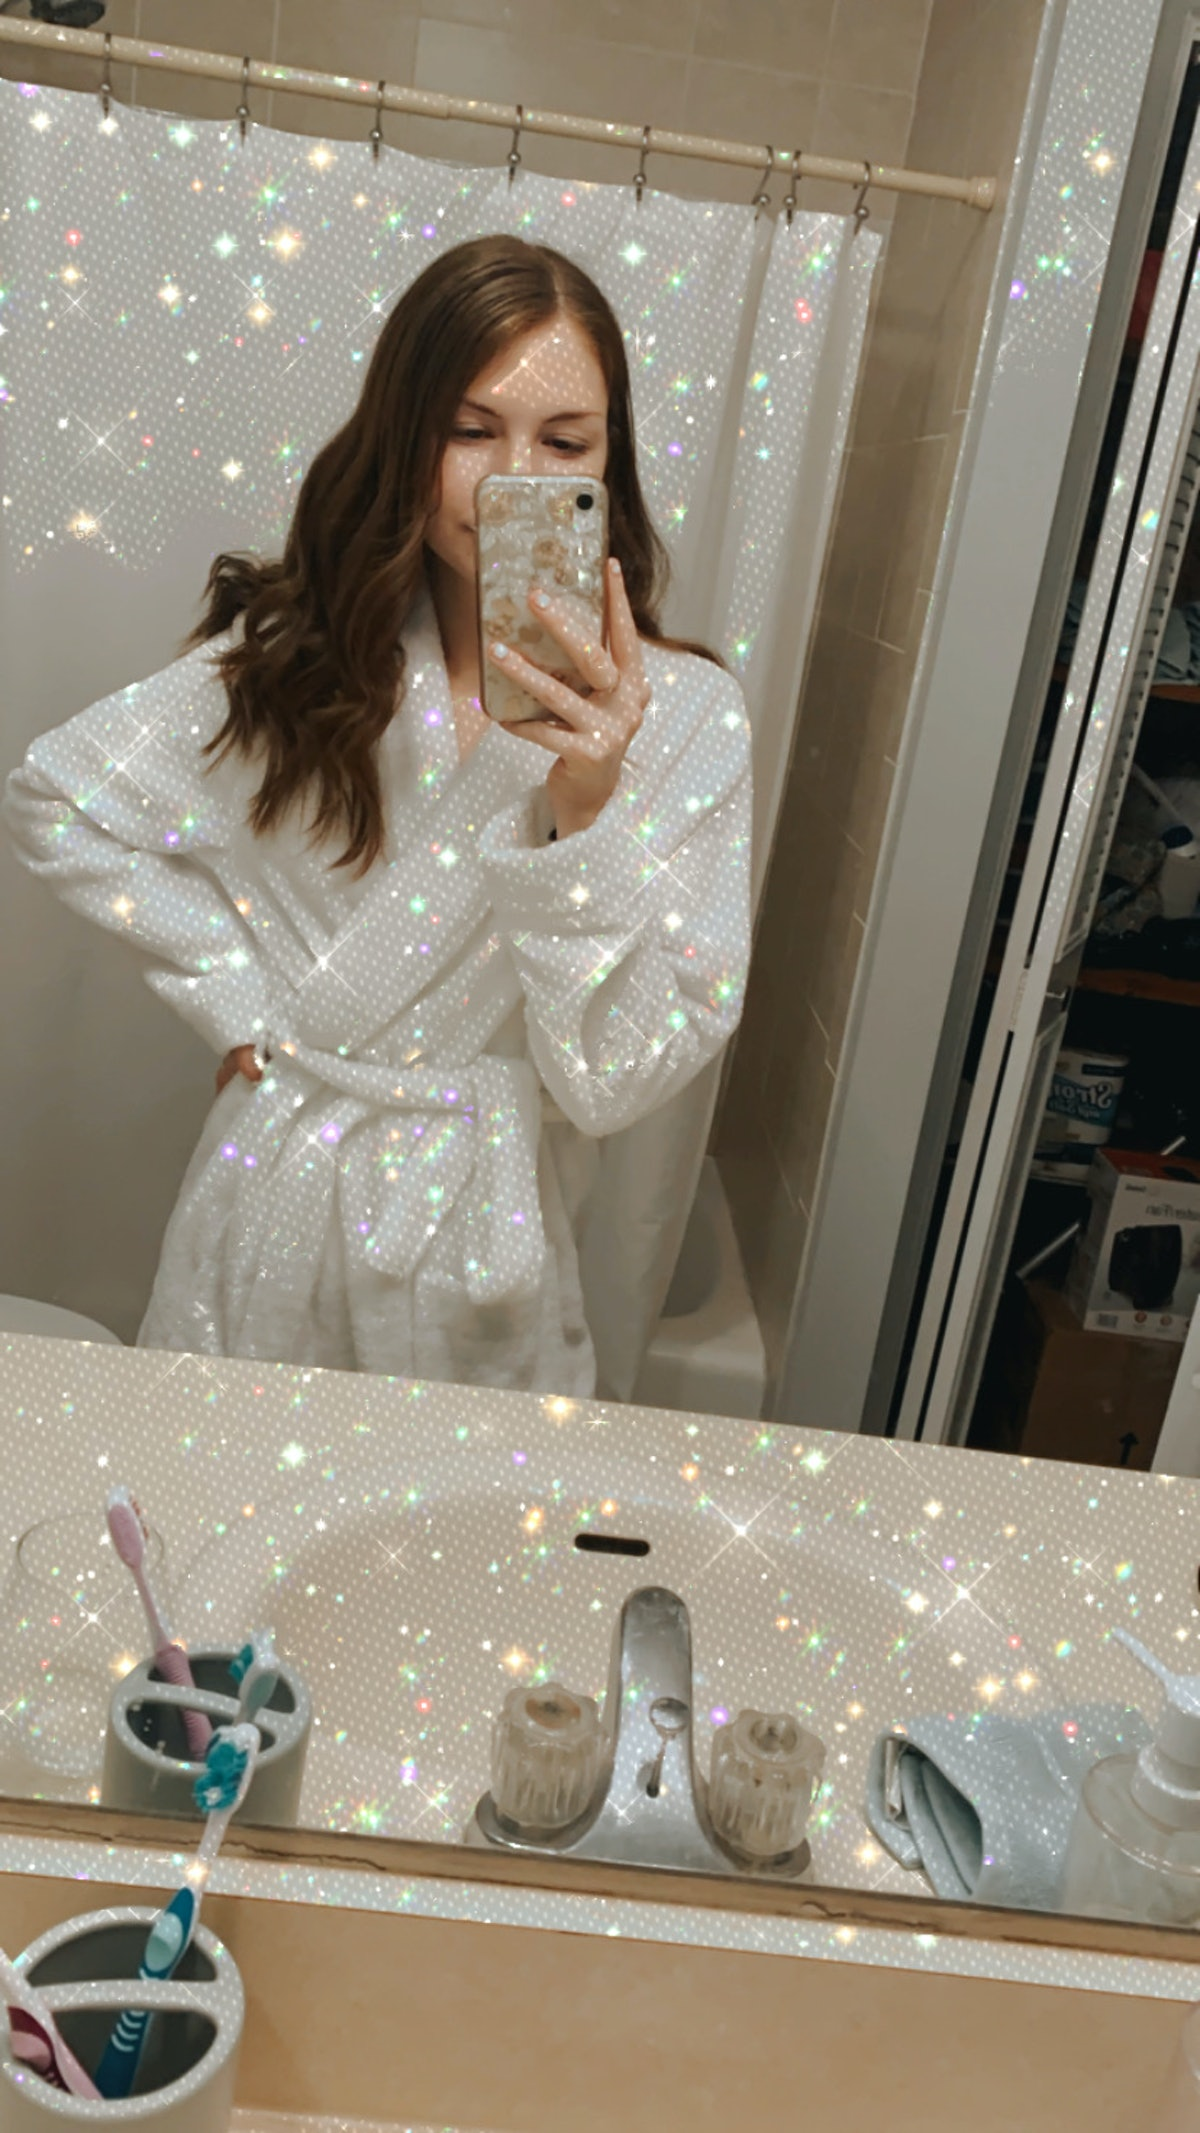 A young woman in a bathrobe poses for a selfie while using a glitter on white effect.